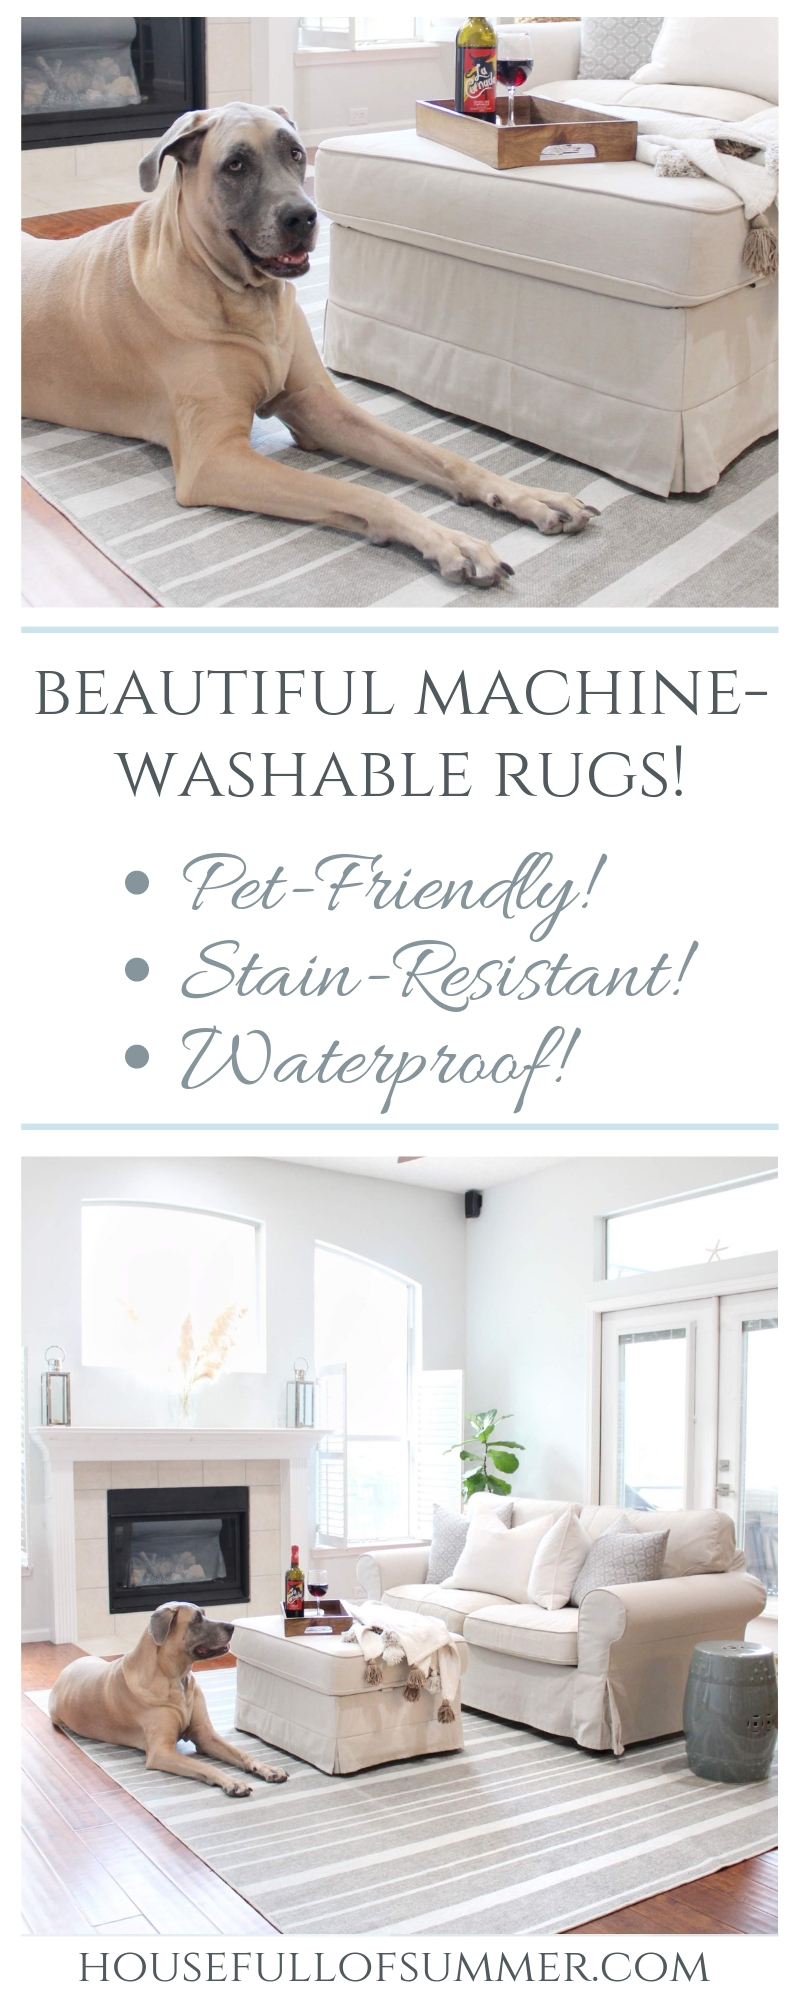 Beautiful Machine Washable Rugs!? Yep! - Waterproof, stain-resistant rugs by Ruggable make life easier and more fun! Great for pets, active families, kids, parties, etc. Ruggable rug review by House Full of Summer dog-friendly, kid-friendly, striped gray rug family room coastal home neutral living room decor fireplace windows #housefullofsummer